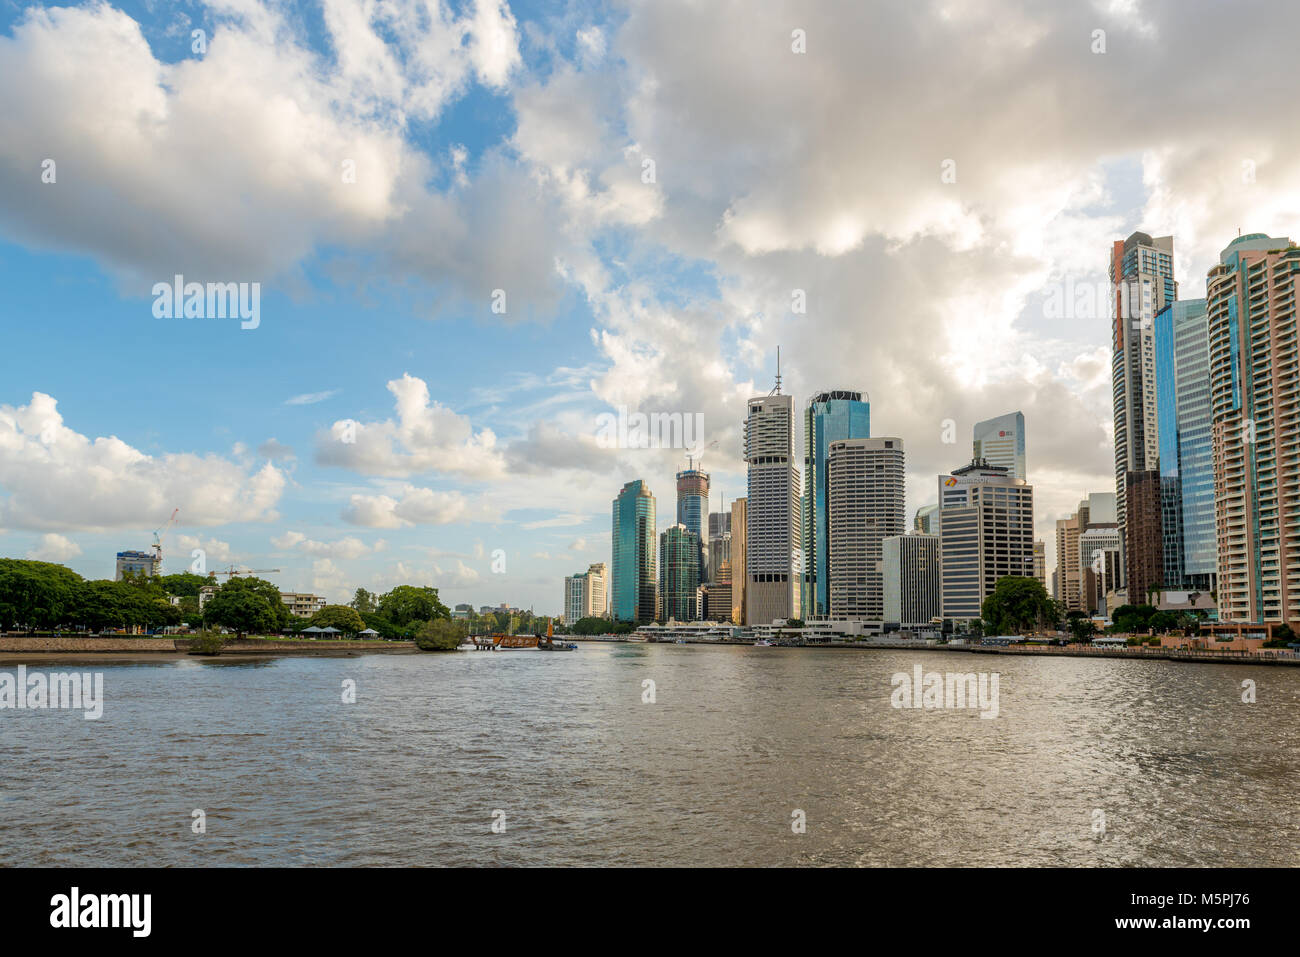 Brisbane Central Business District on the banks of the River Brisbane. - Stock Image